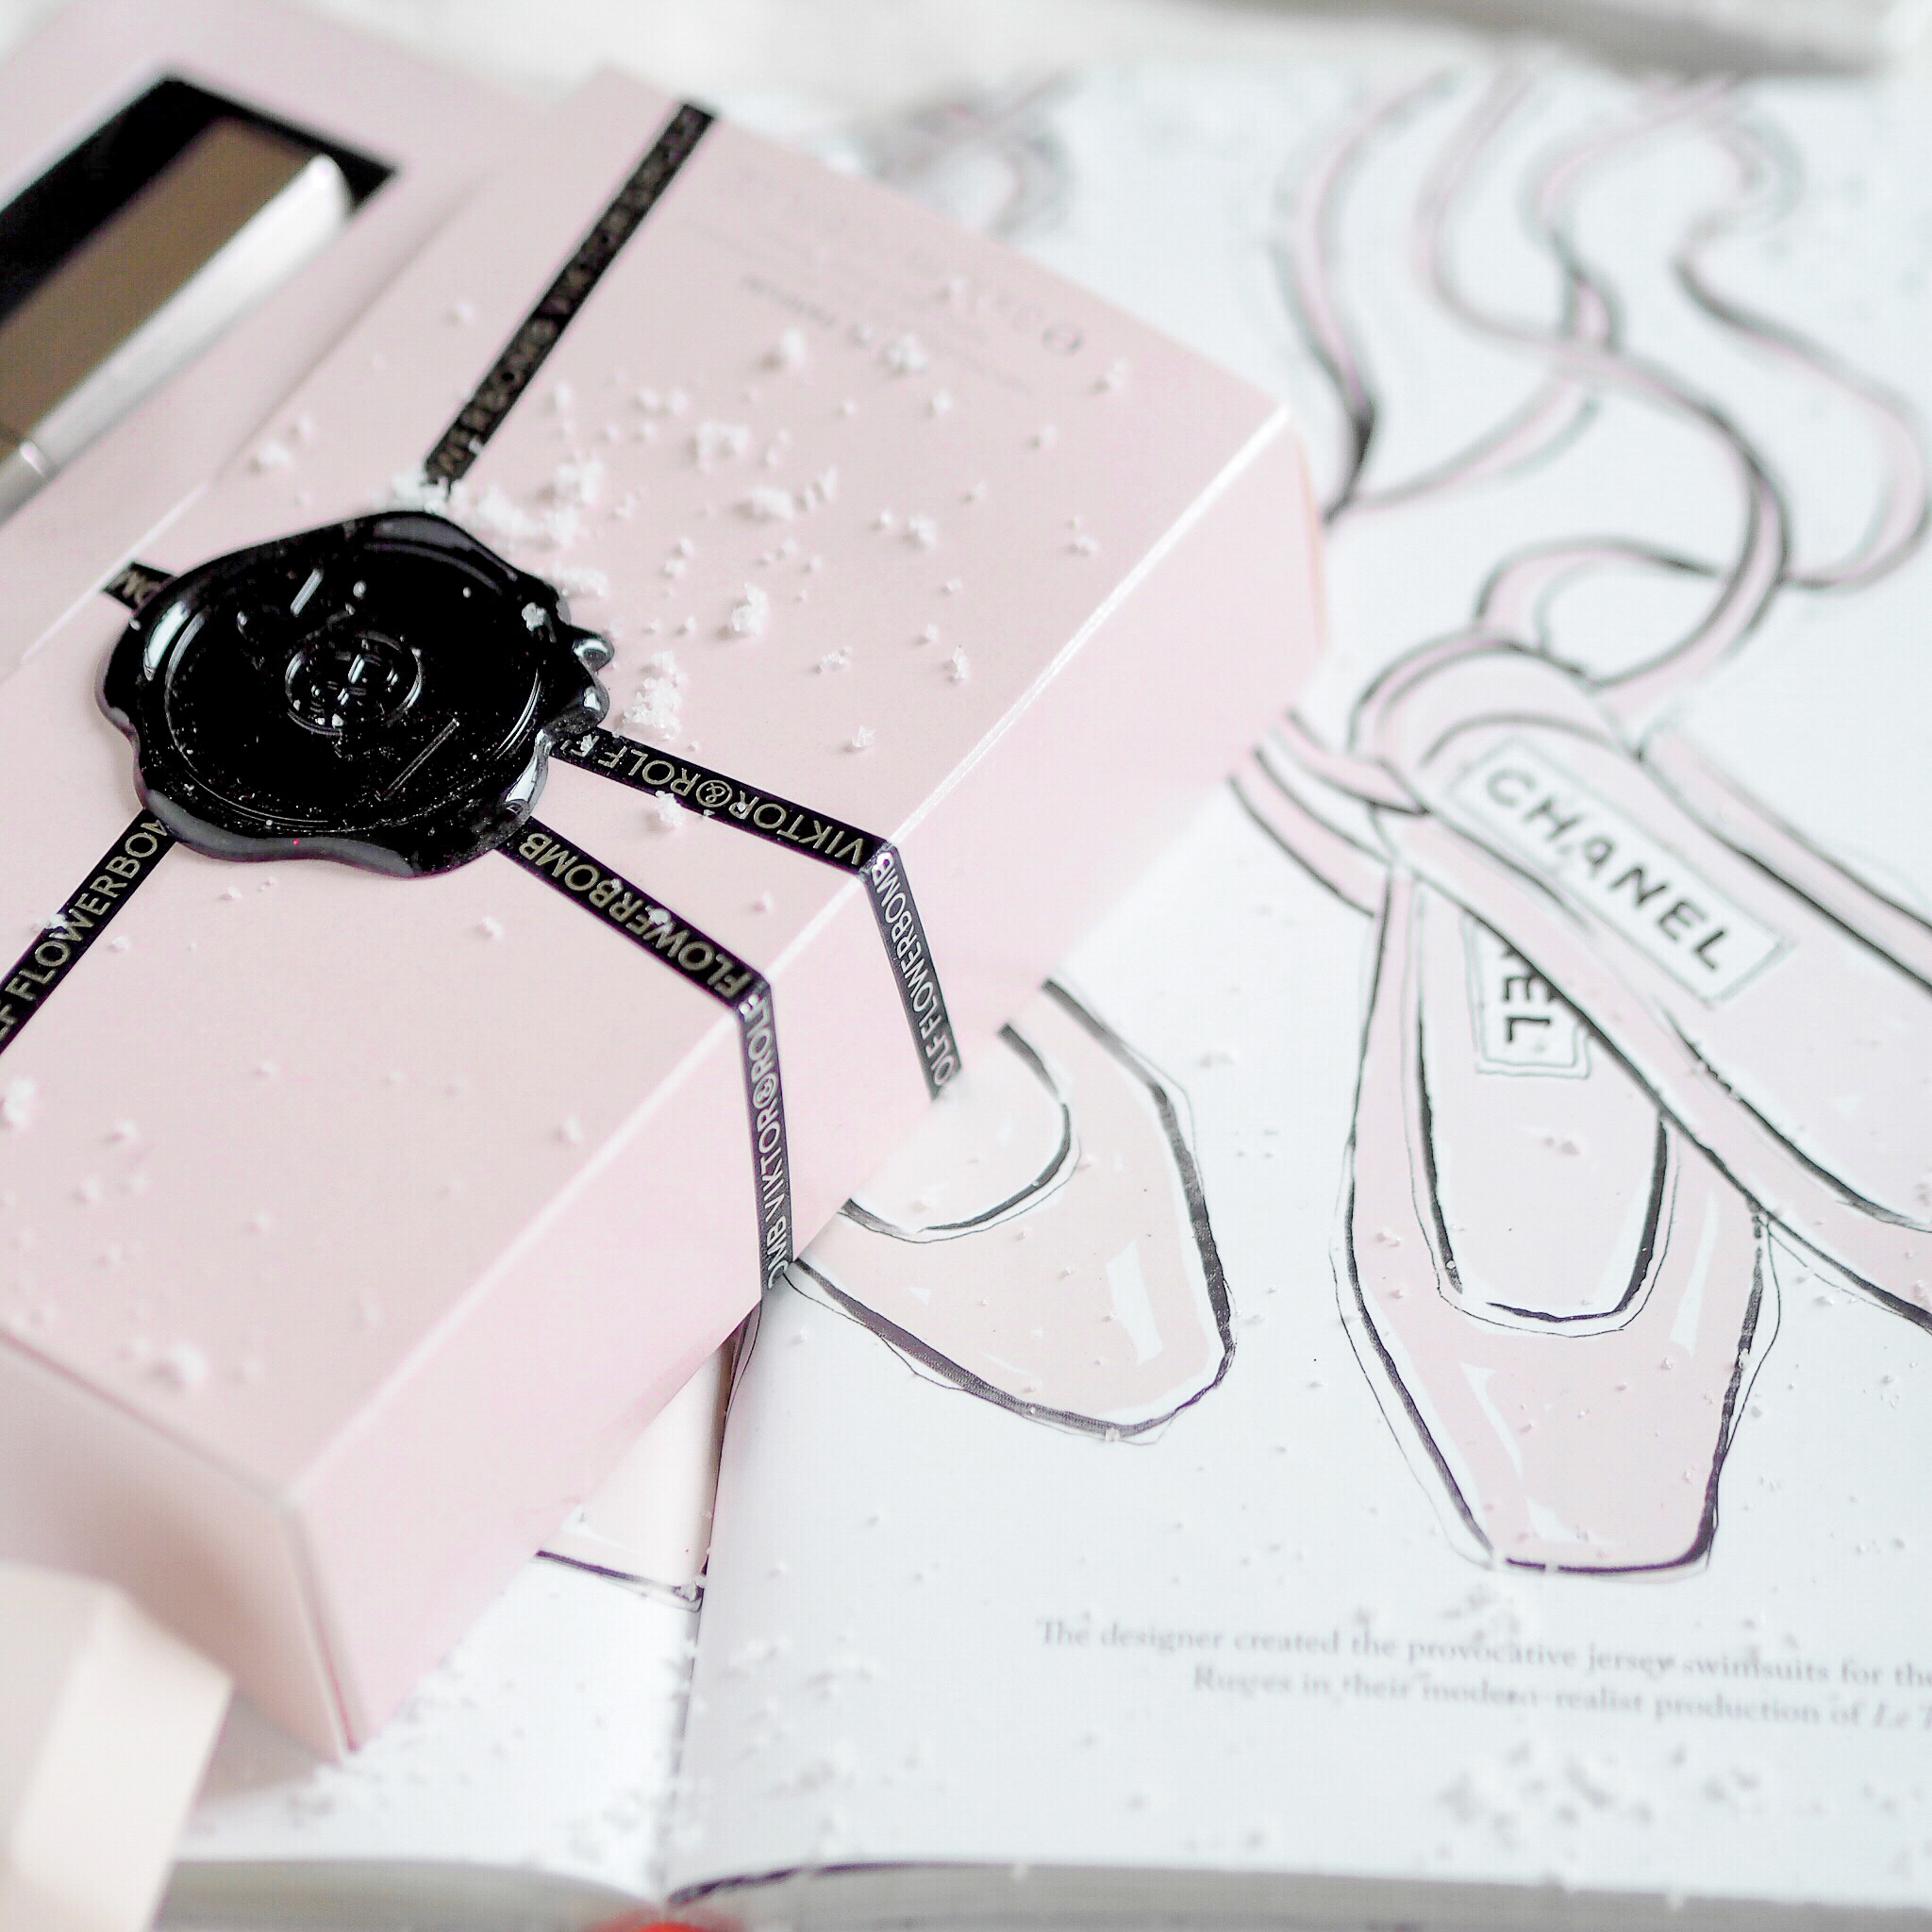 Seasons Treatings: Perfectly Pretty Christmas Gift Ideas For Her, Viktor & Rolf Flowerbomb, Megan Hess